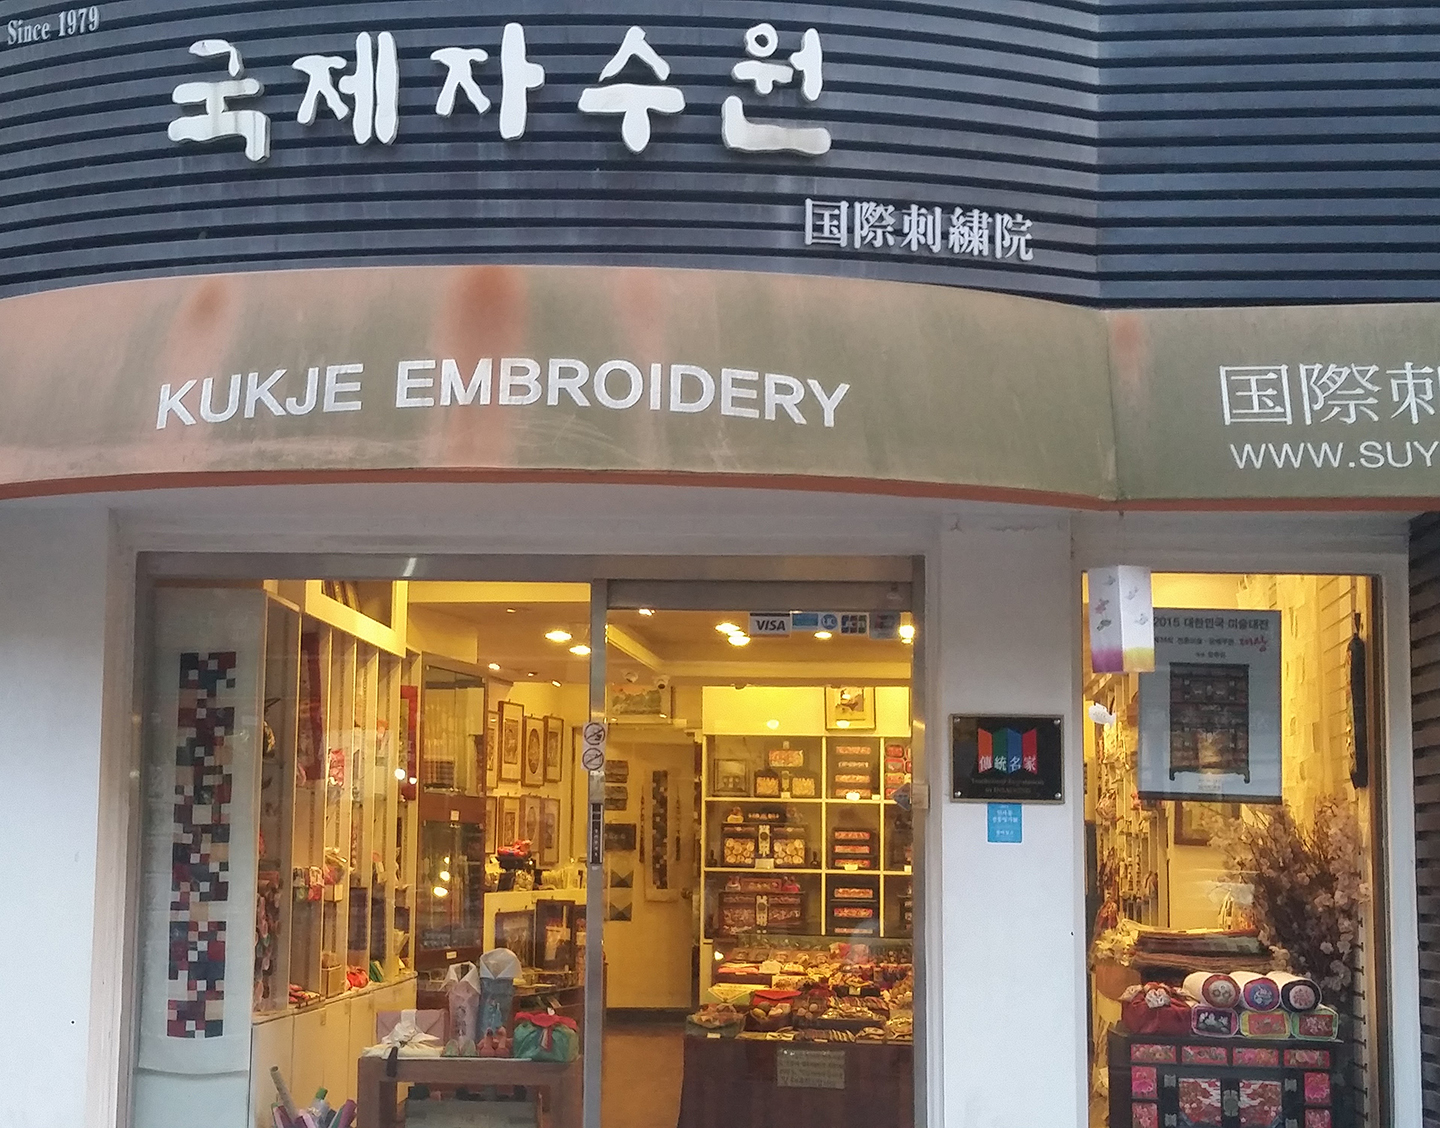 Insadong - Embroidery Store